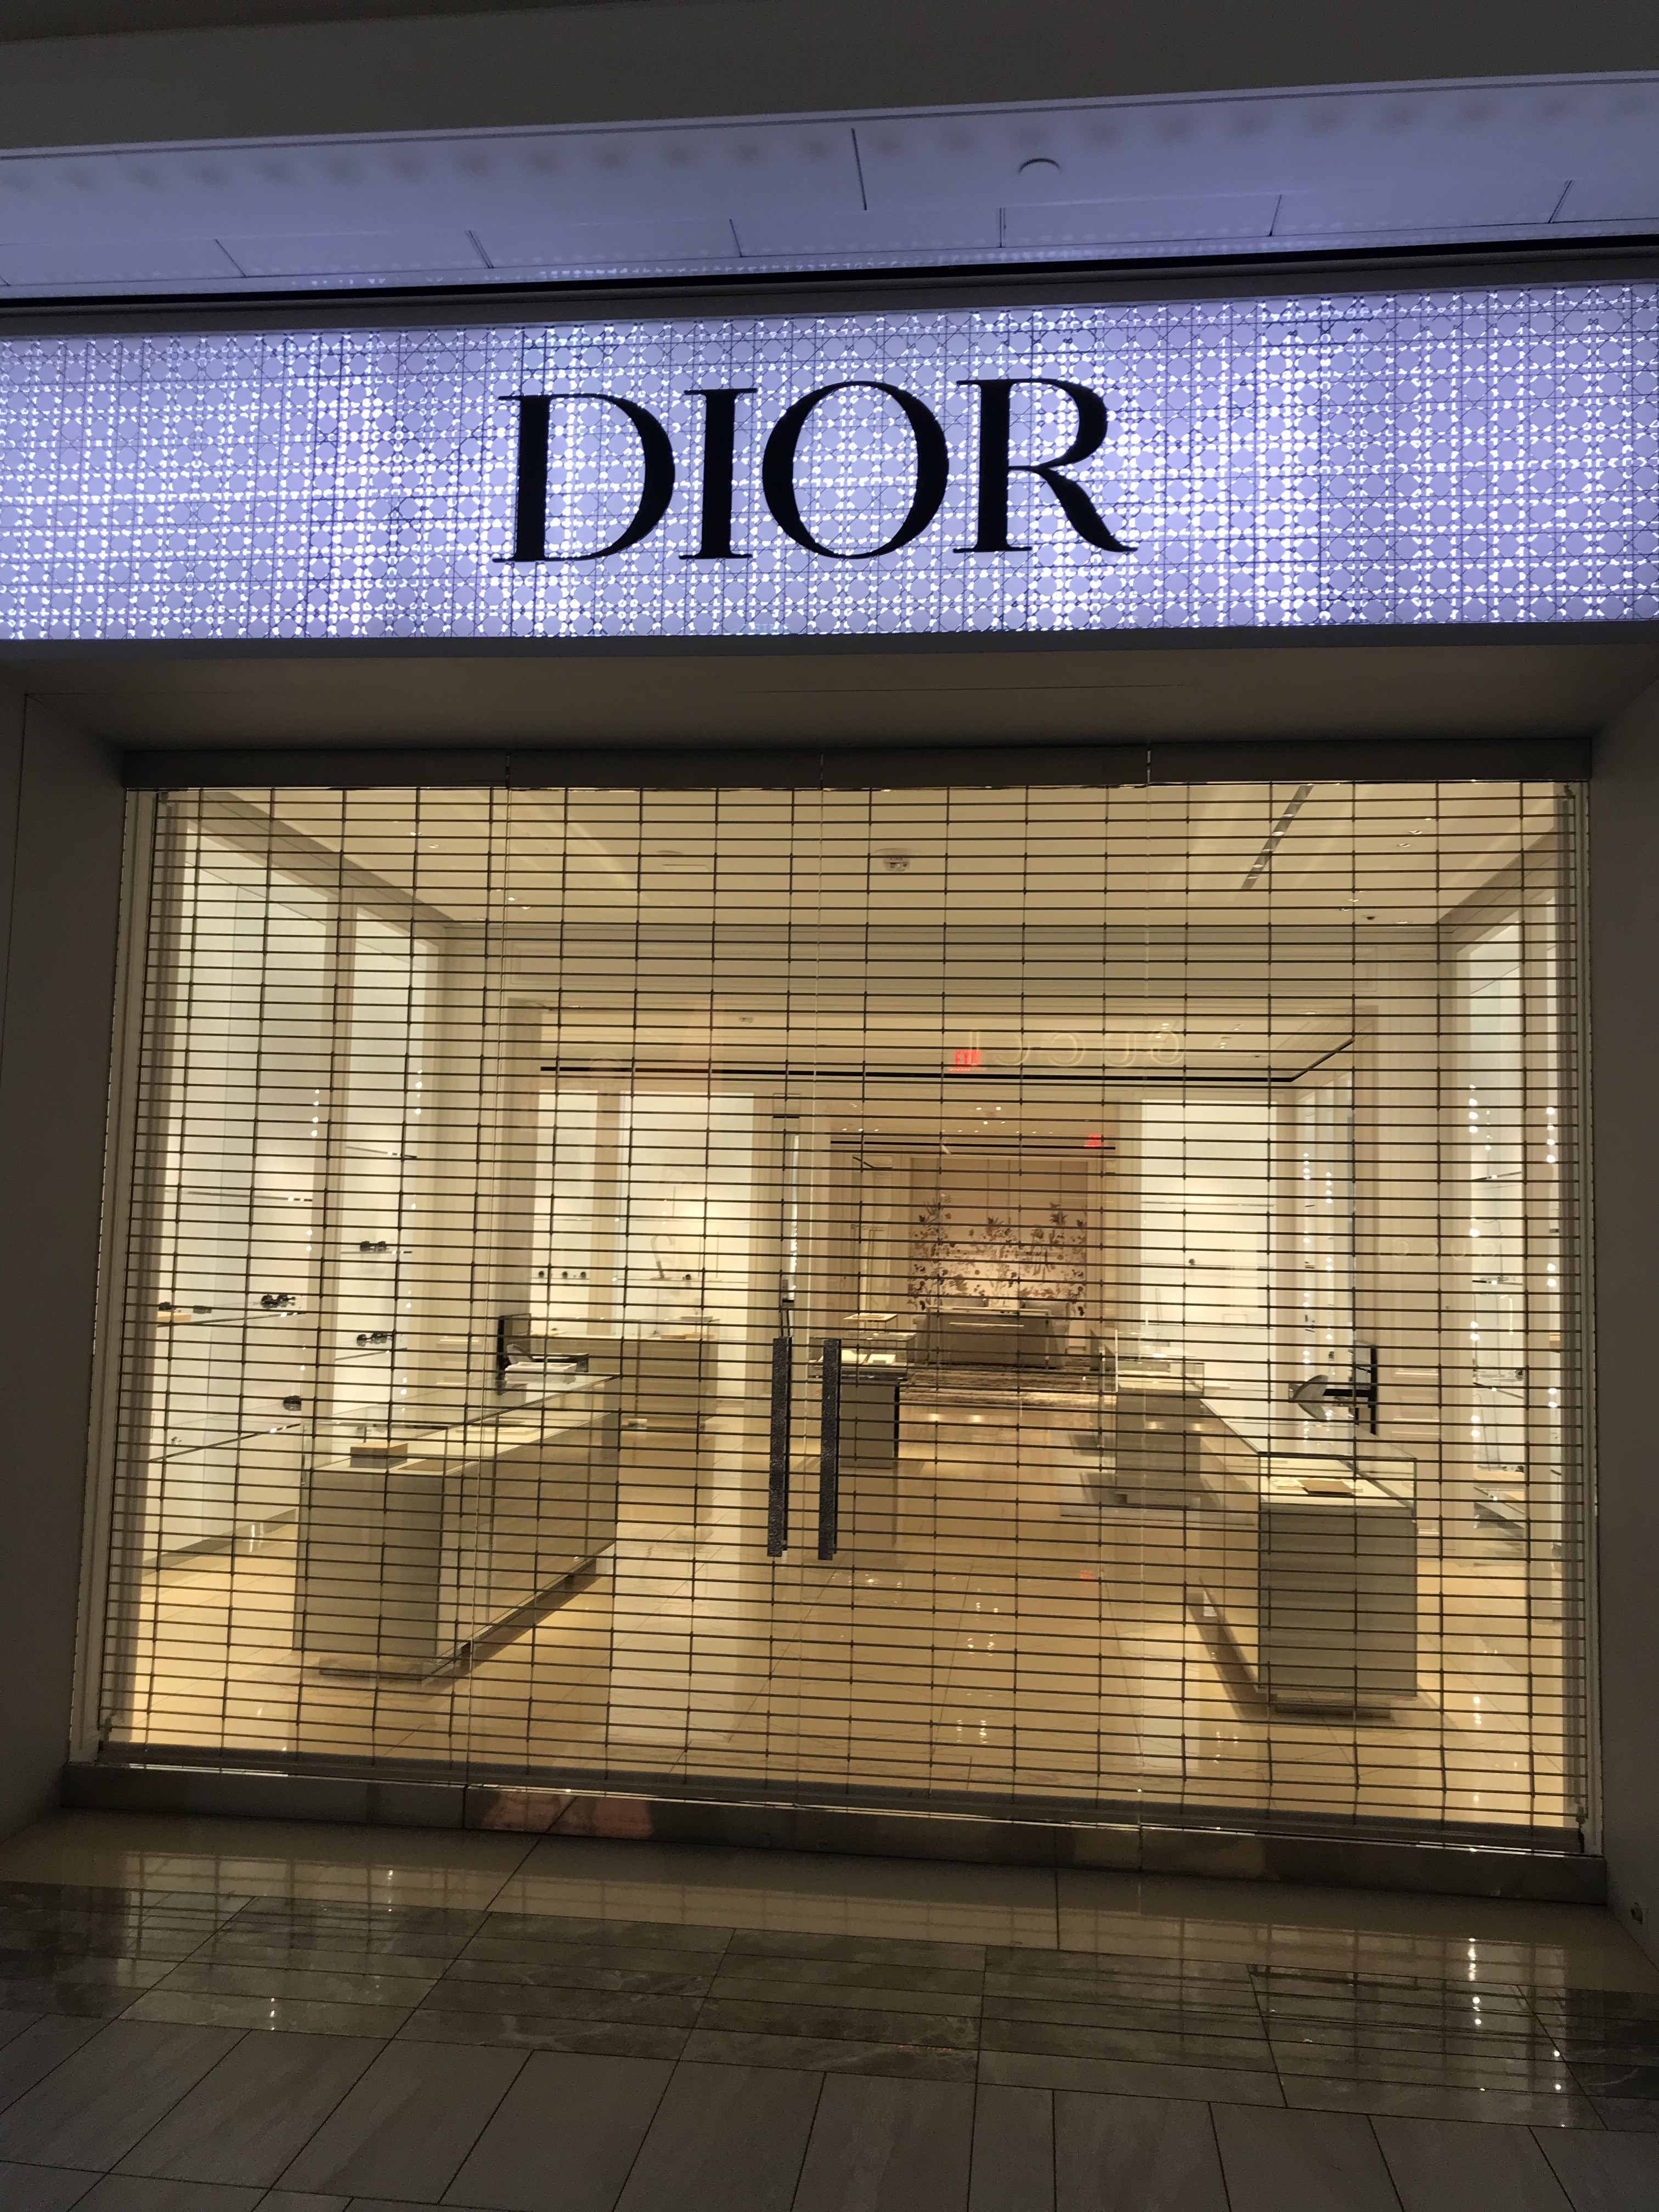 Dior has removed merchandise from the public's view in its Boston store.